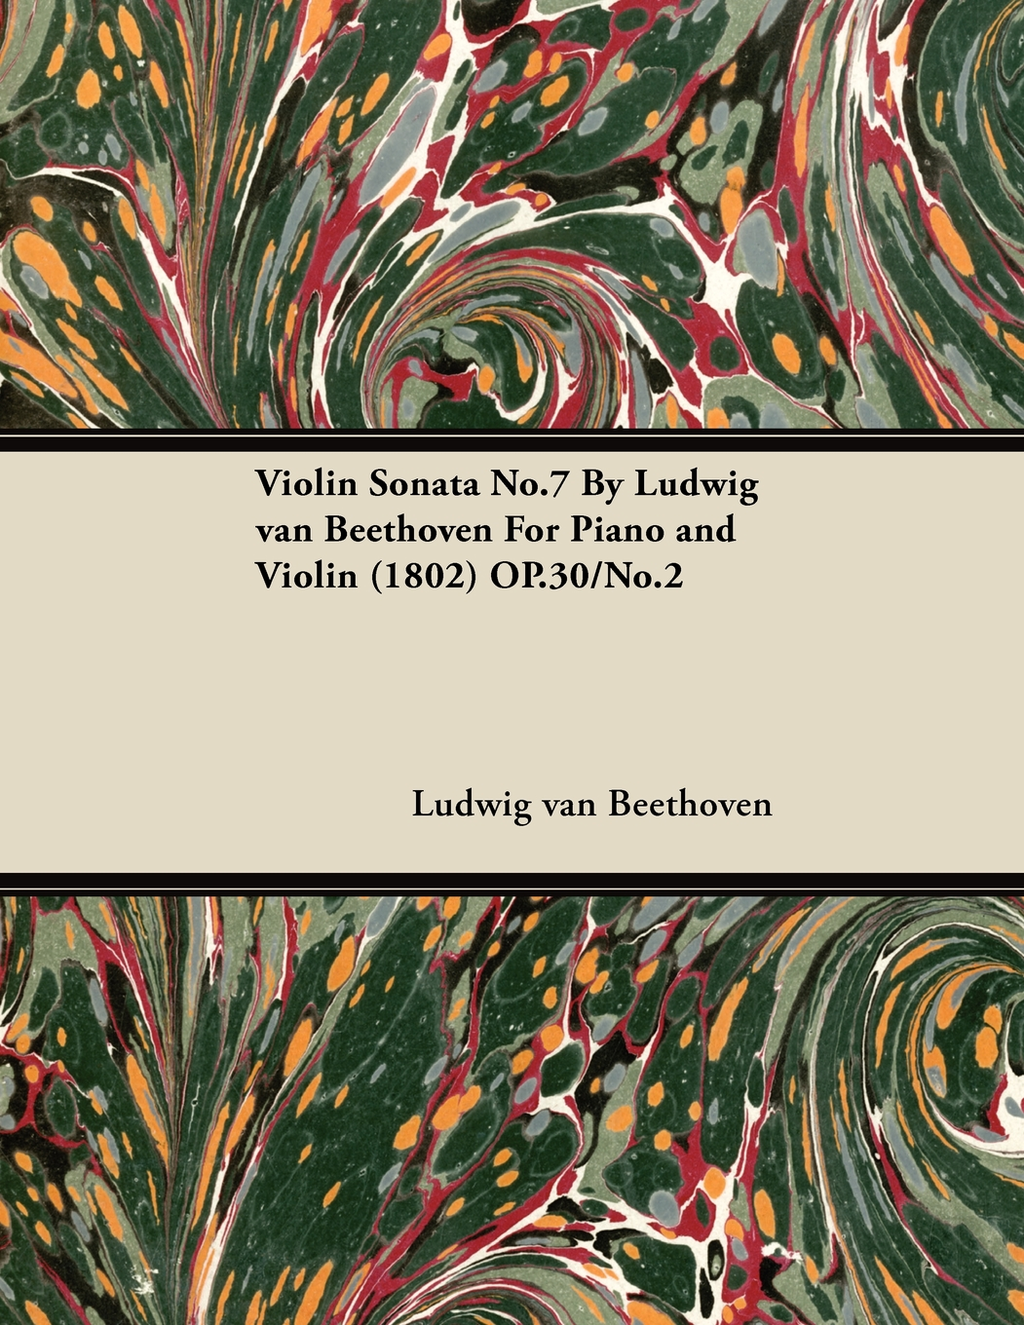 Violin Sonata No.7 By Ludwig van Beethoven For Piano and Violin (1802) OP.30/No.2